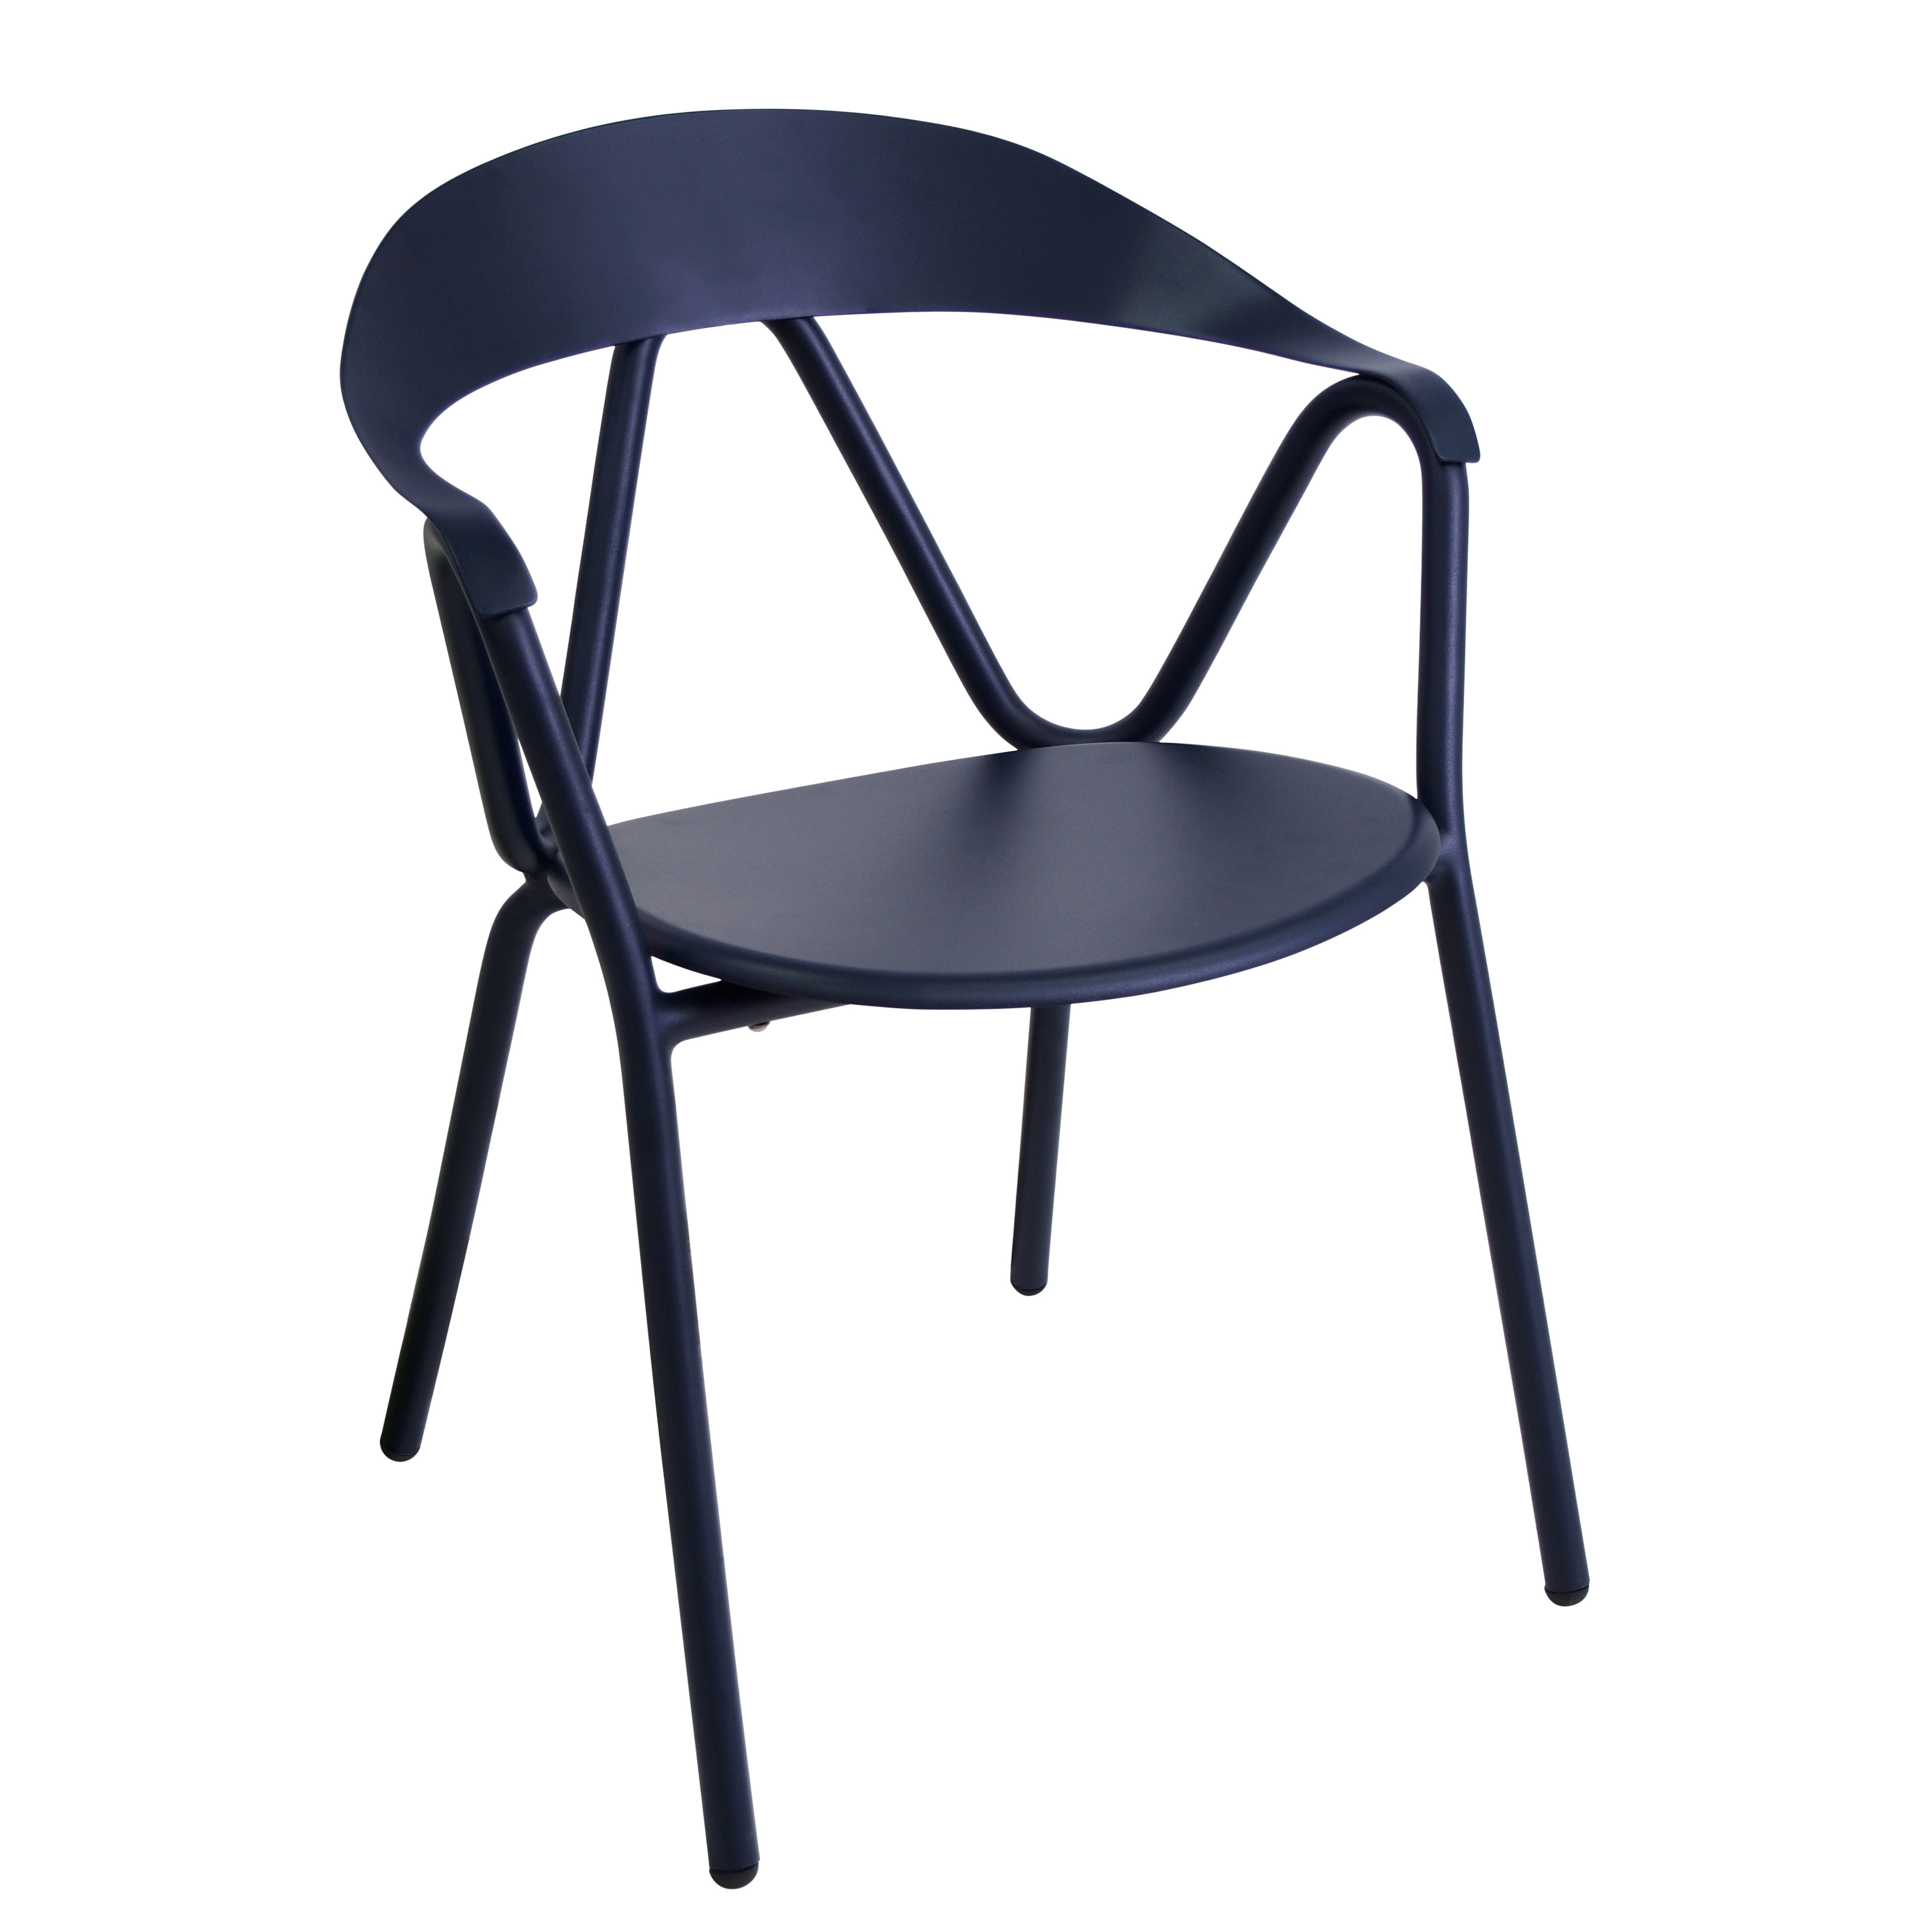 emuamericas, llc 620 chair, armchair, stacking, outdoor